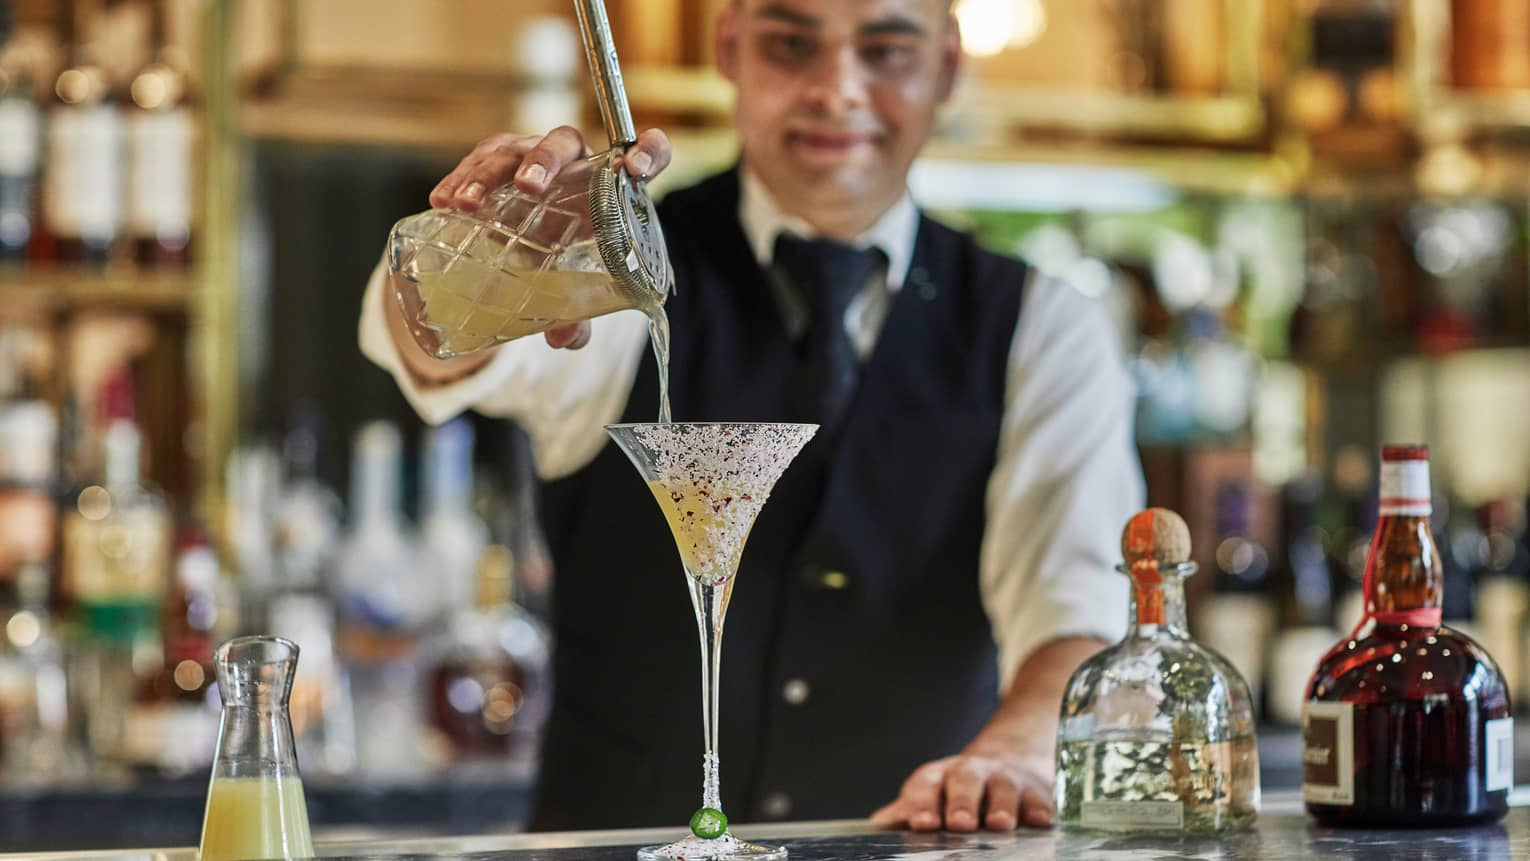 Bartender wearing black vest pours cocktail from crystal shaker into martini glass